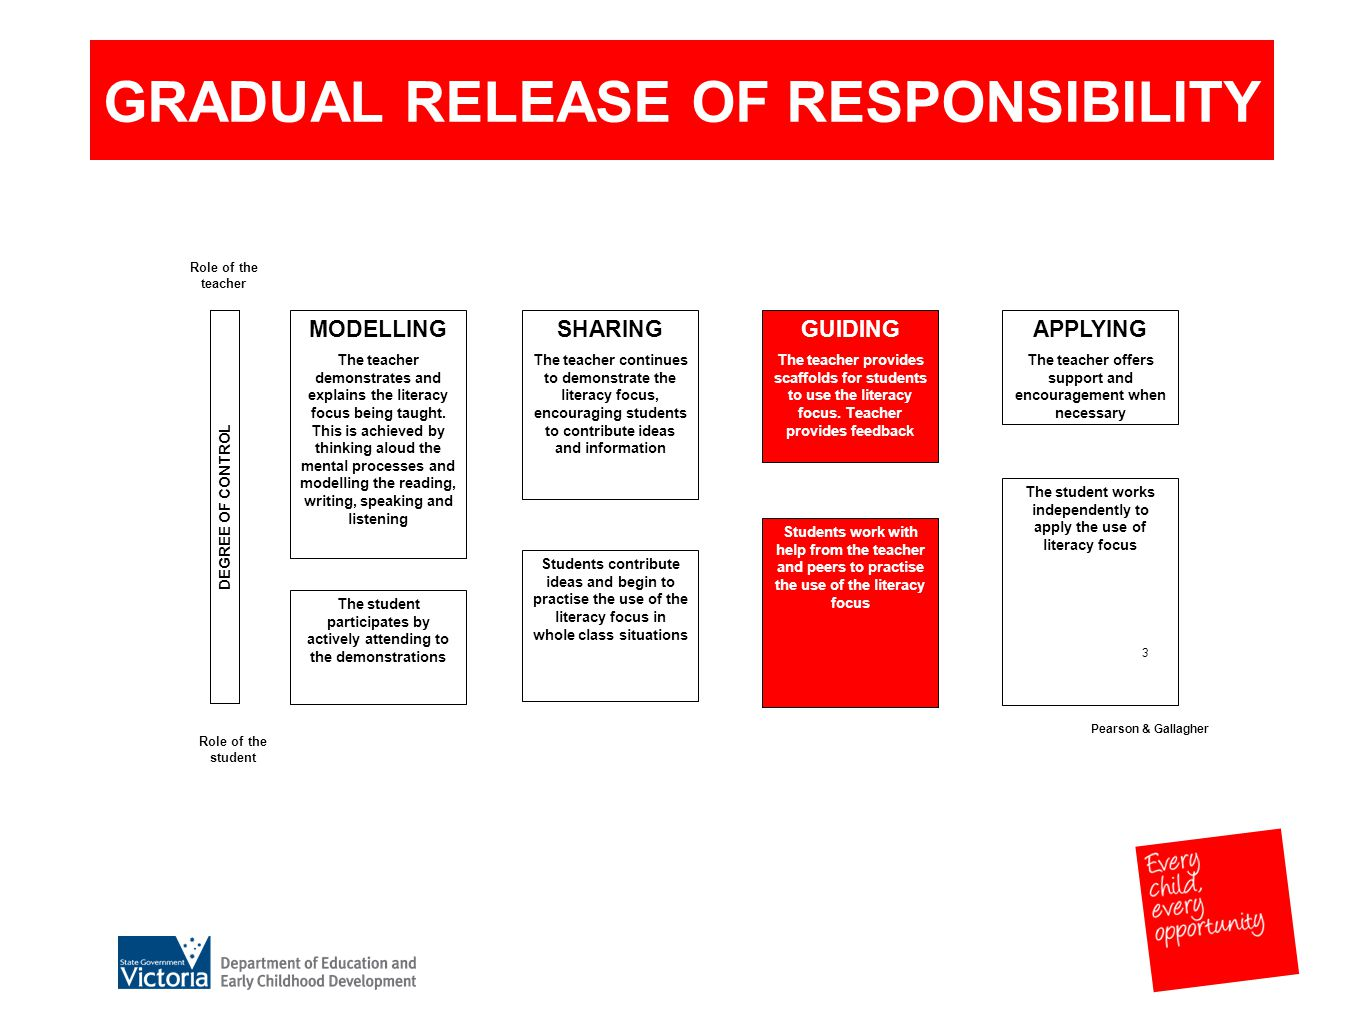 3 GRADUAL RELEASE OF RESPONSIBILITY MODELLING The teacher demonstrates and explains the literacy focus being taught.